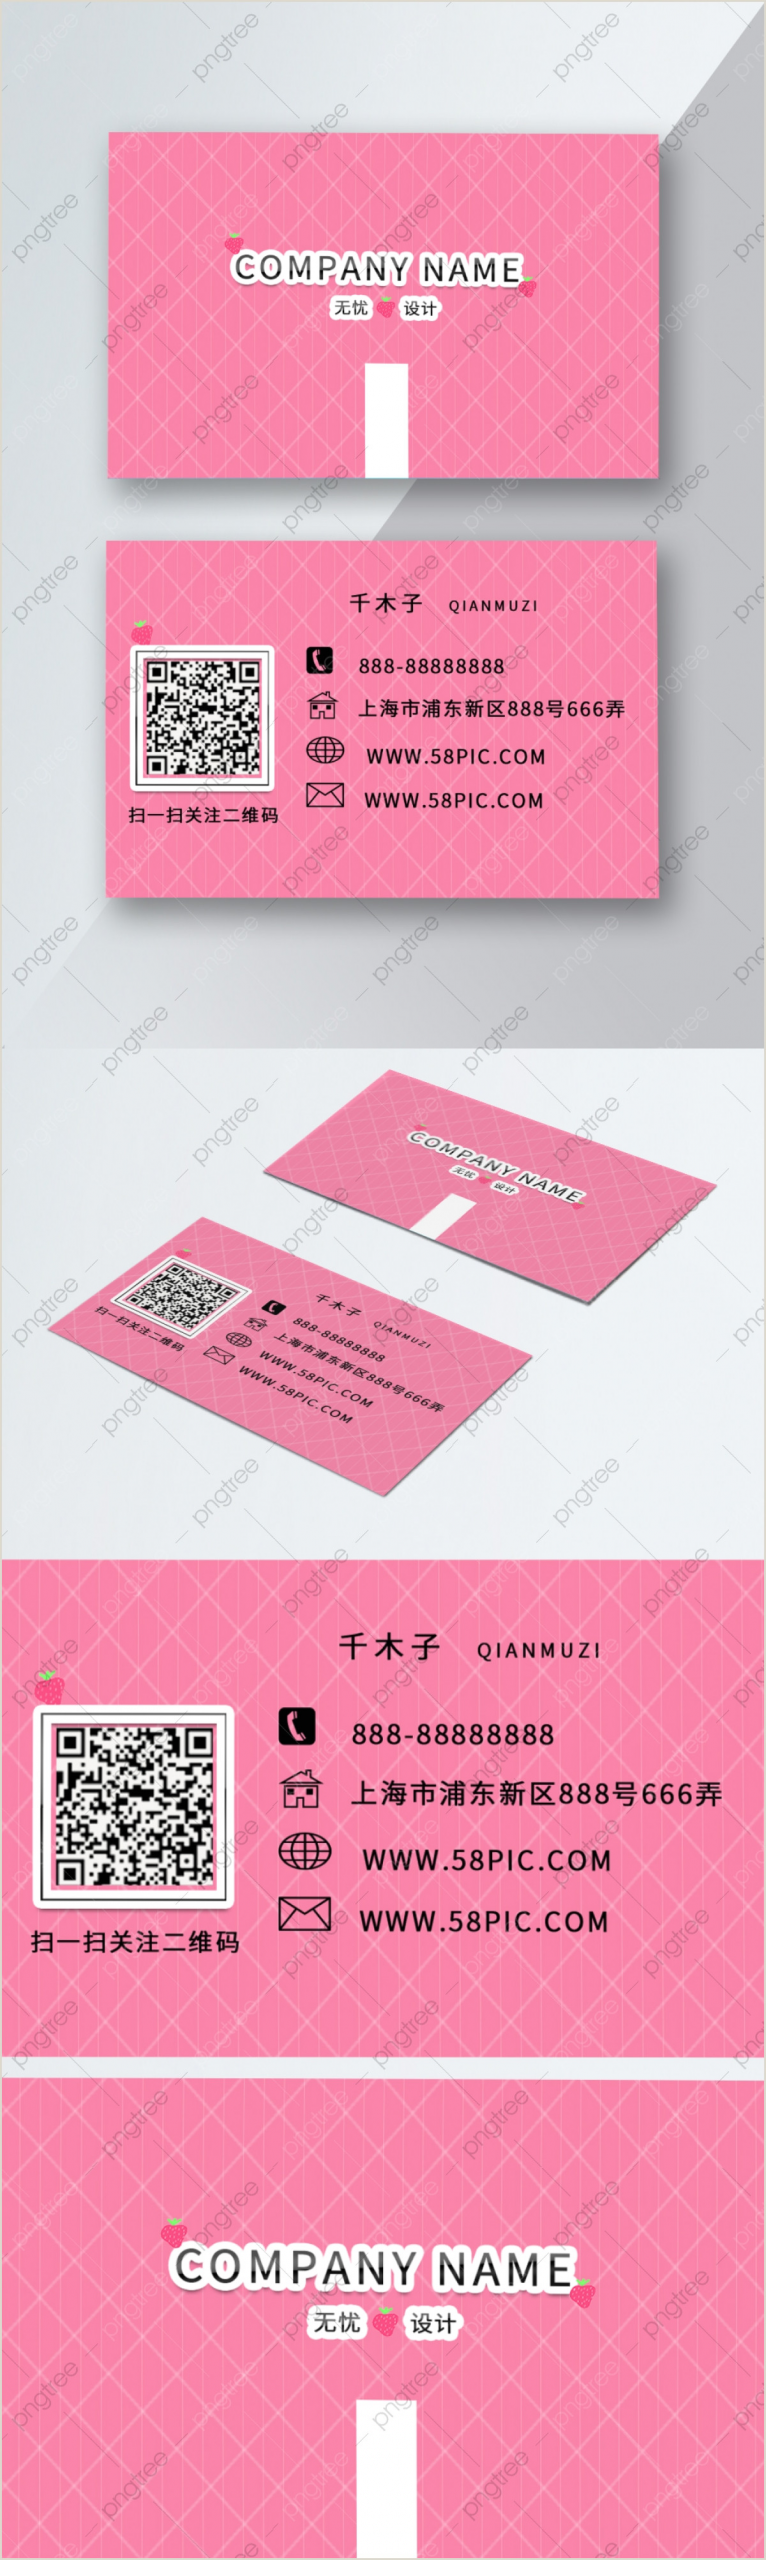 Cute Business Cards Templates Free Cute Business Card Png Vector And Psd Files